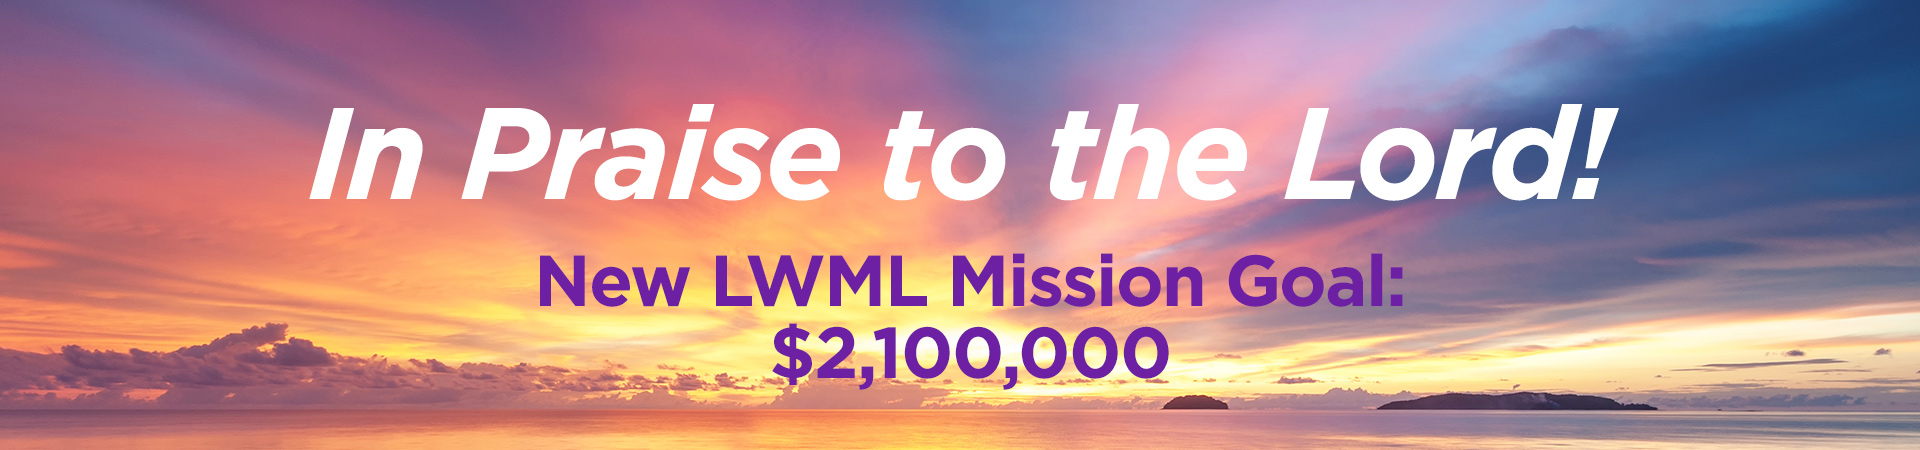 In Praise to the Lord! New LWML Mission Goal: $2,100,000